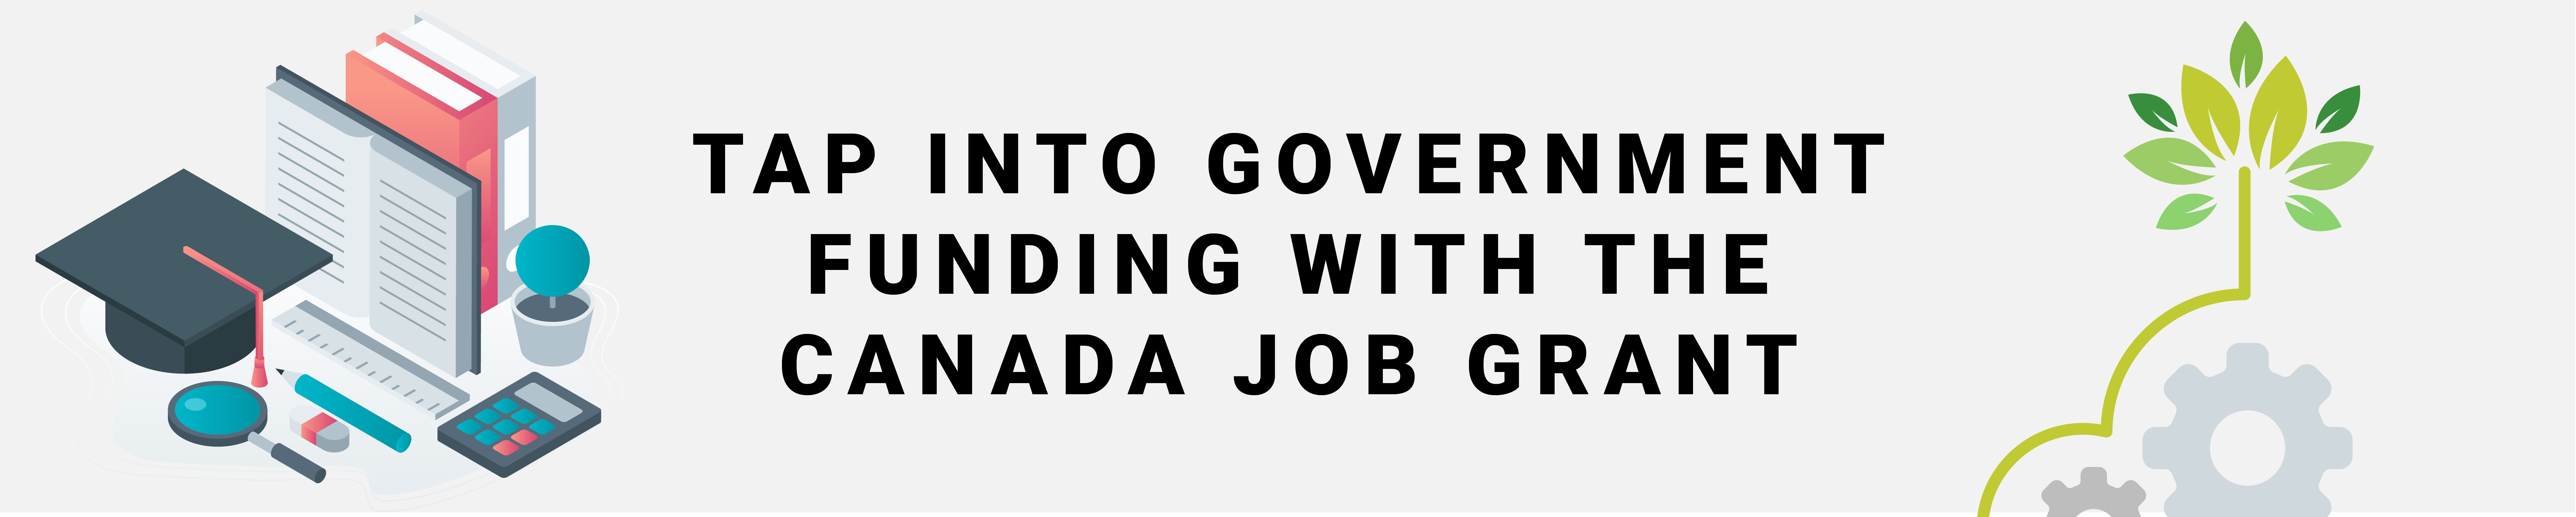 """Banner reading """"Tap into government funding with the canada job grant"""""""